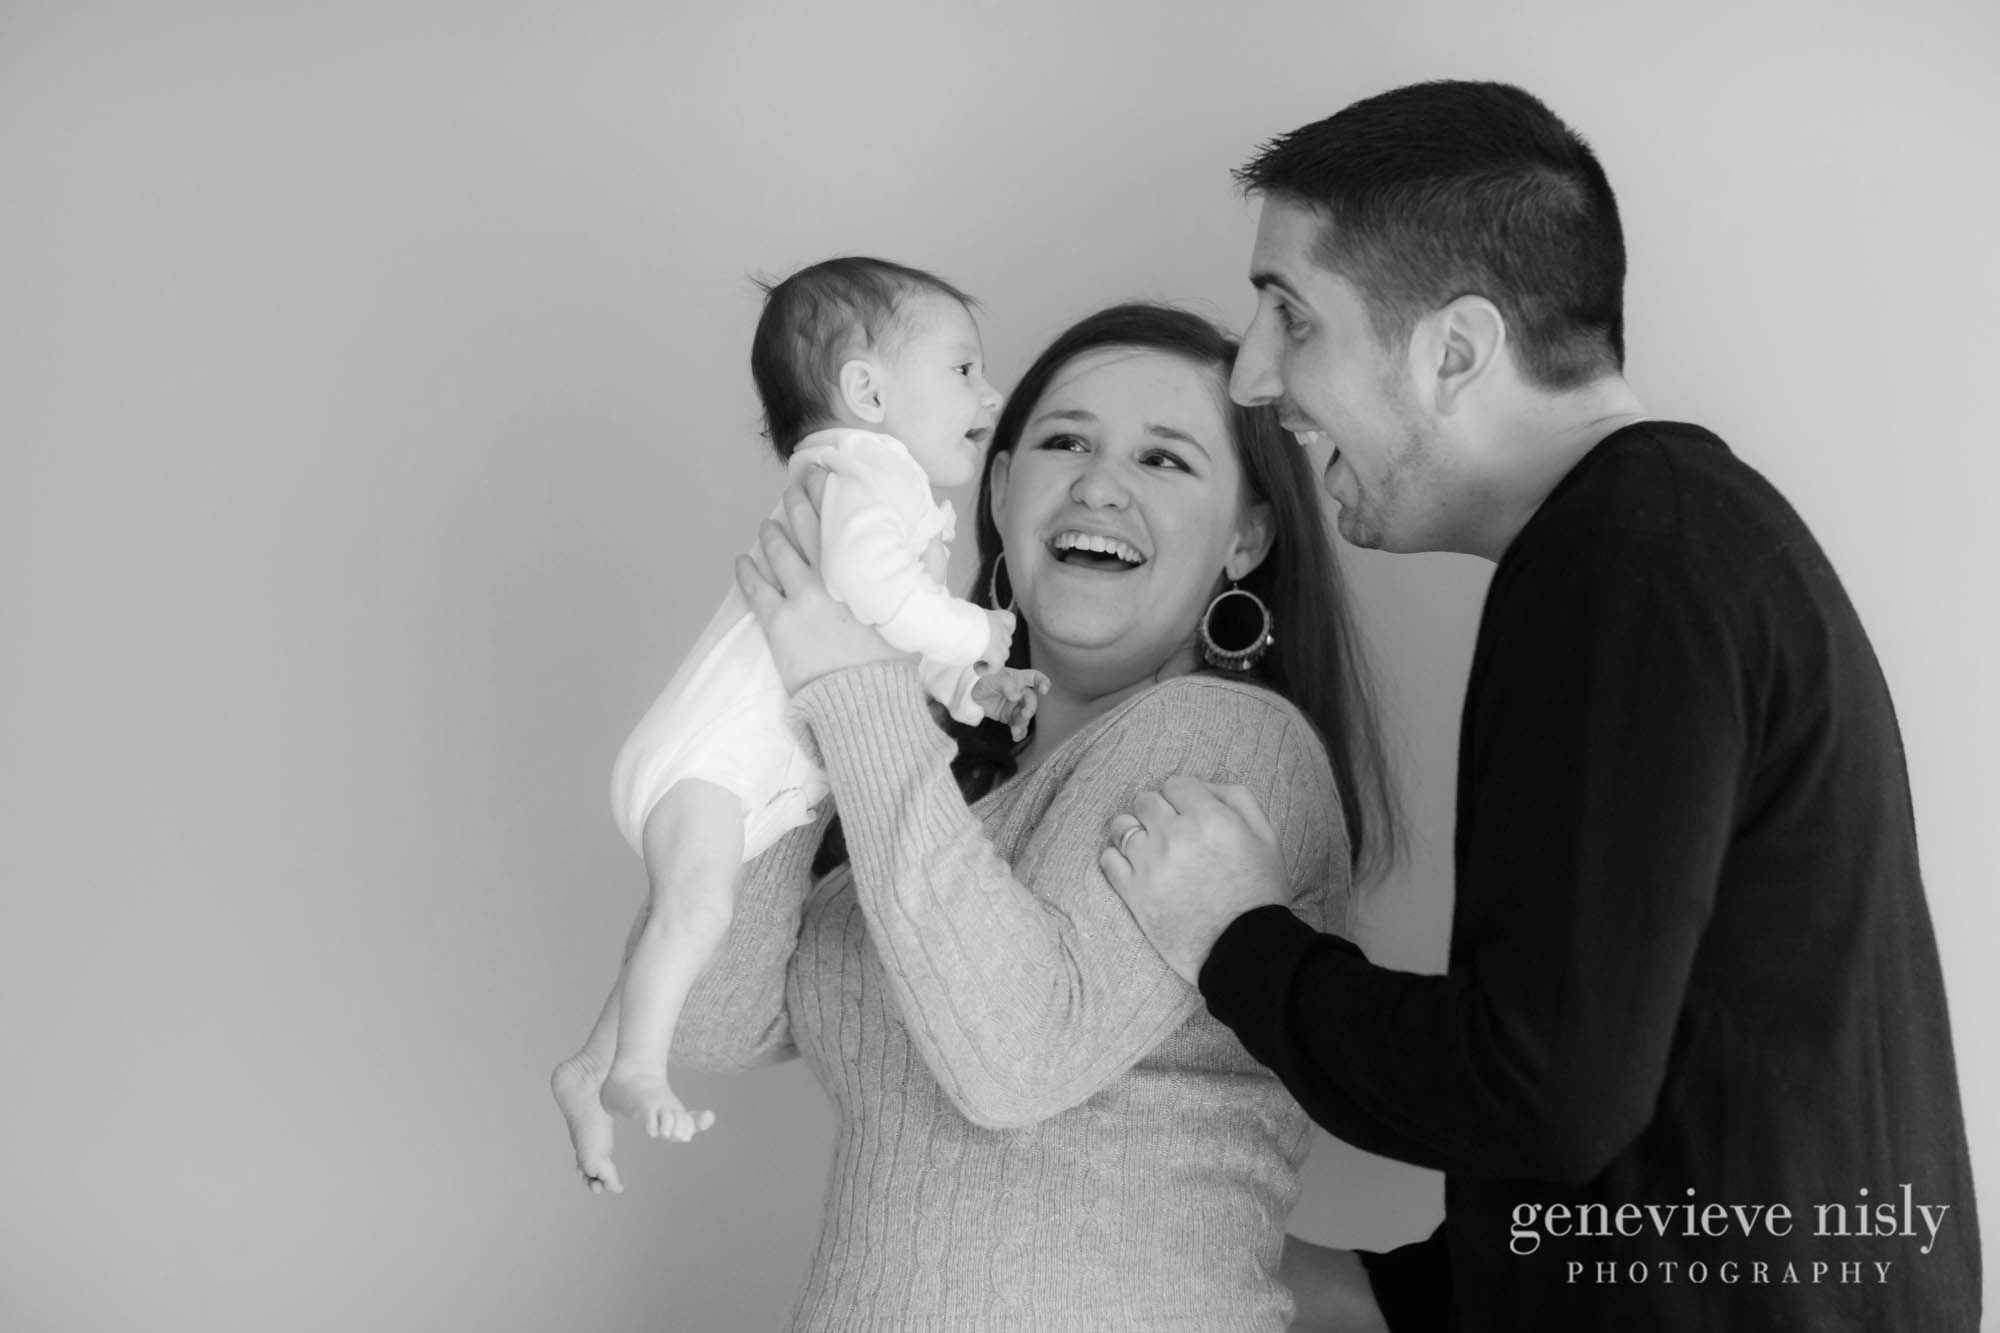 Baby, Copyright Genevieve Nisly Photography, Ohio, Portraits, Winter